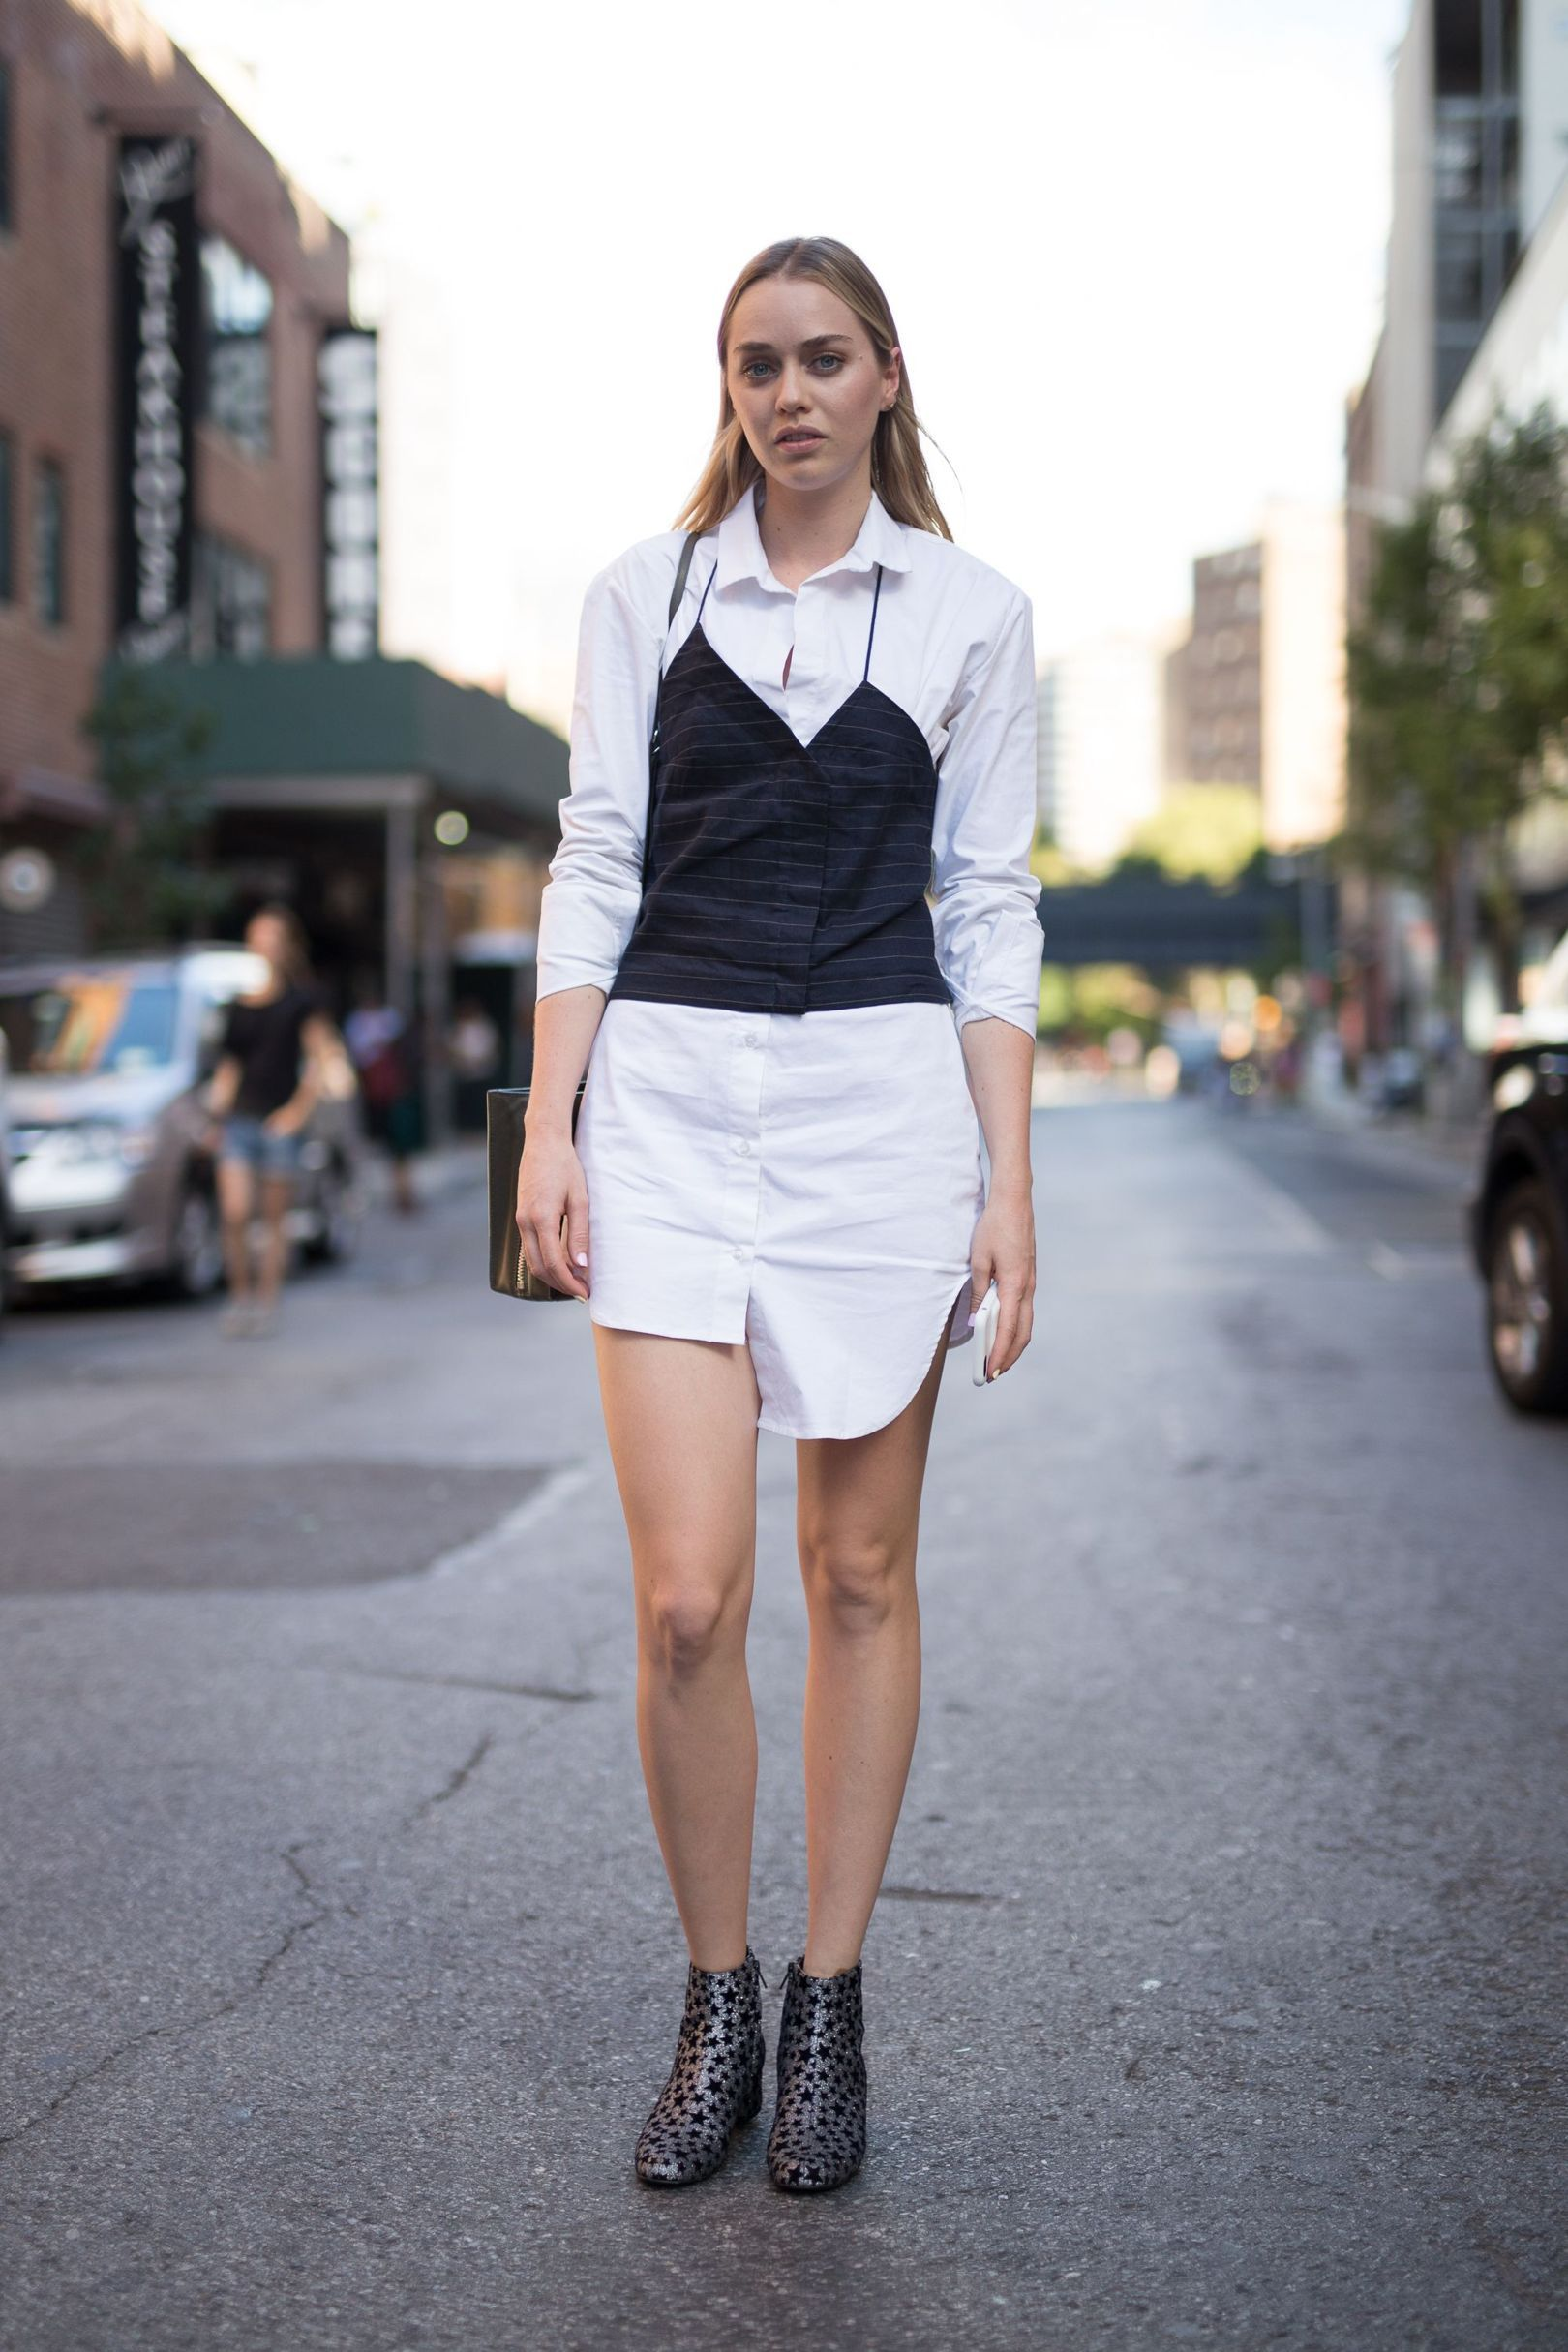 Our street style photographer captures the most stylish attendees at New York…